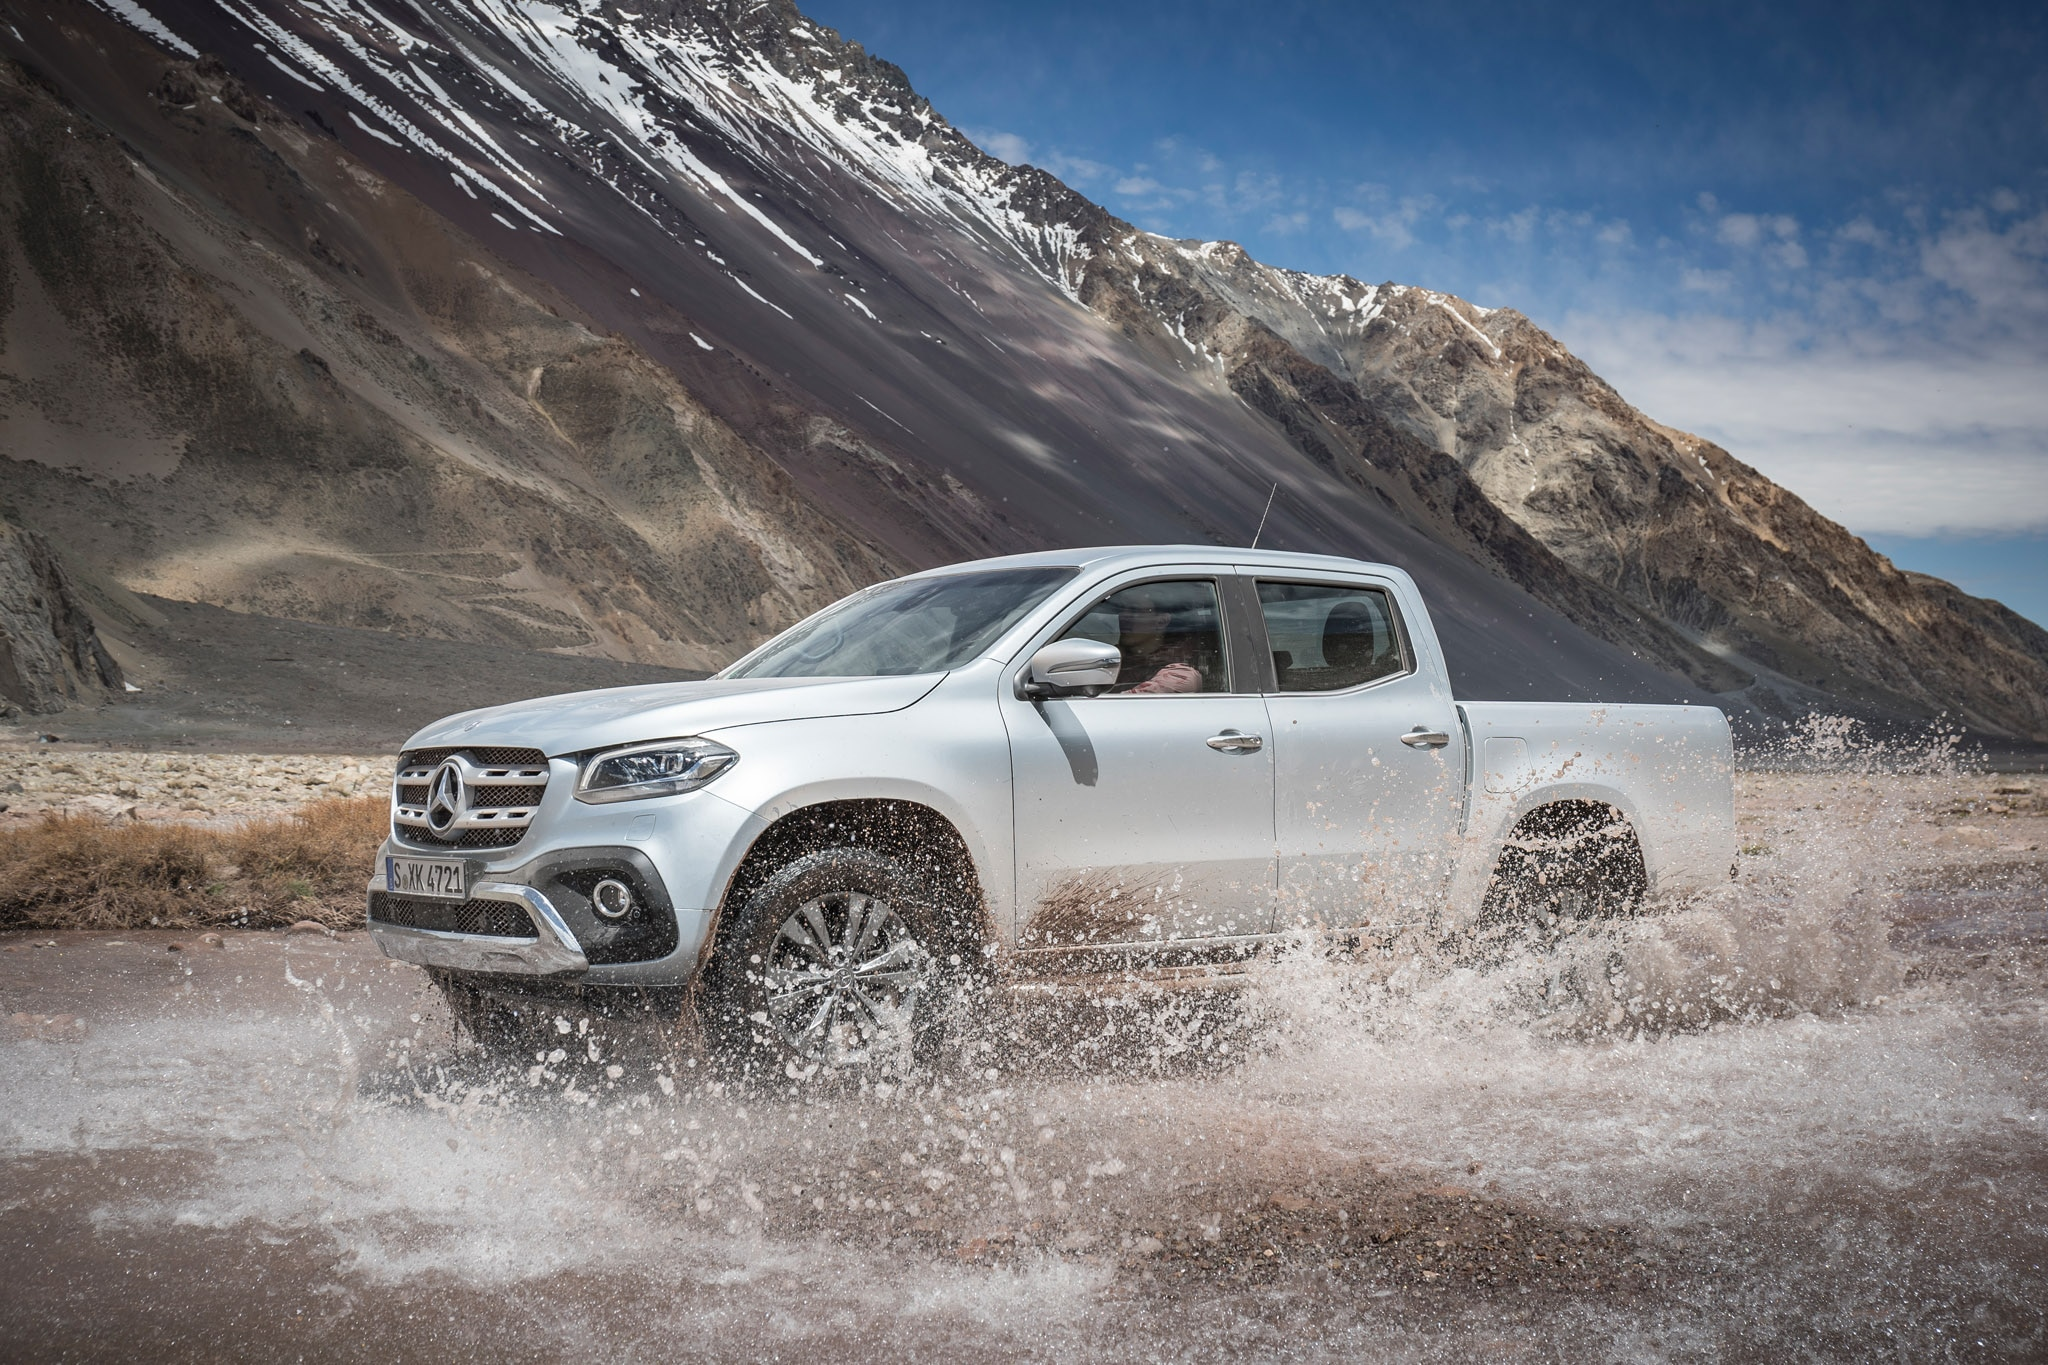 Mercedes X-Class goes camping with new concept accessories